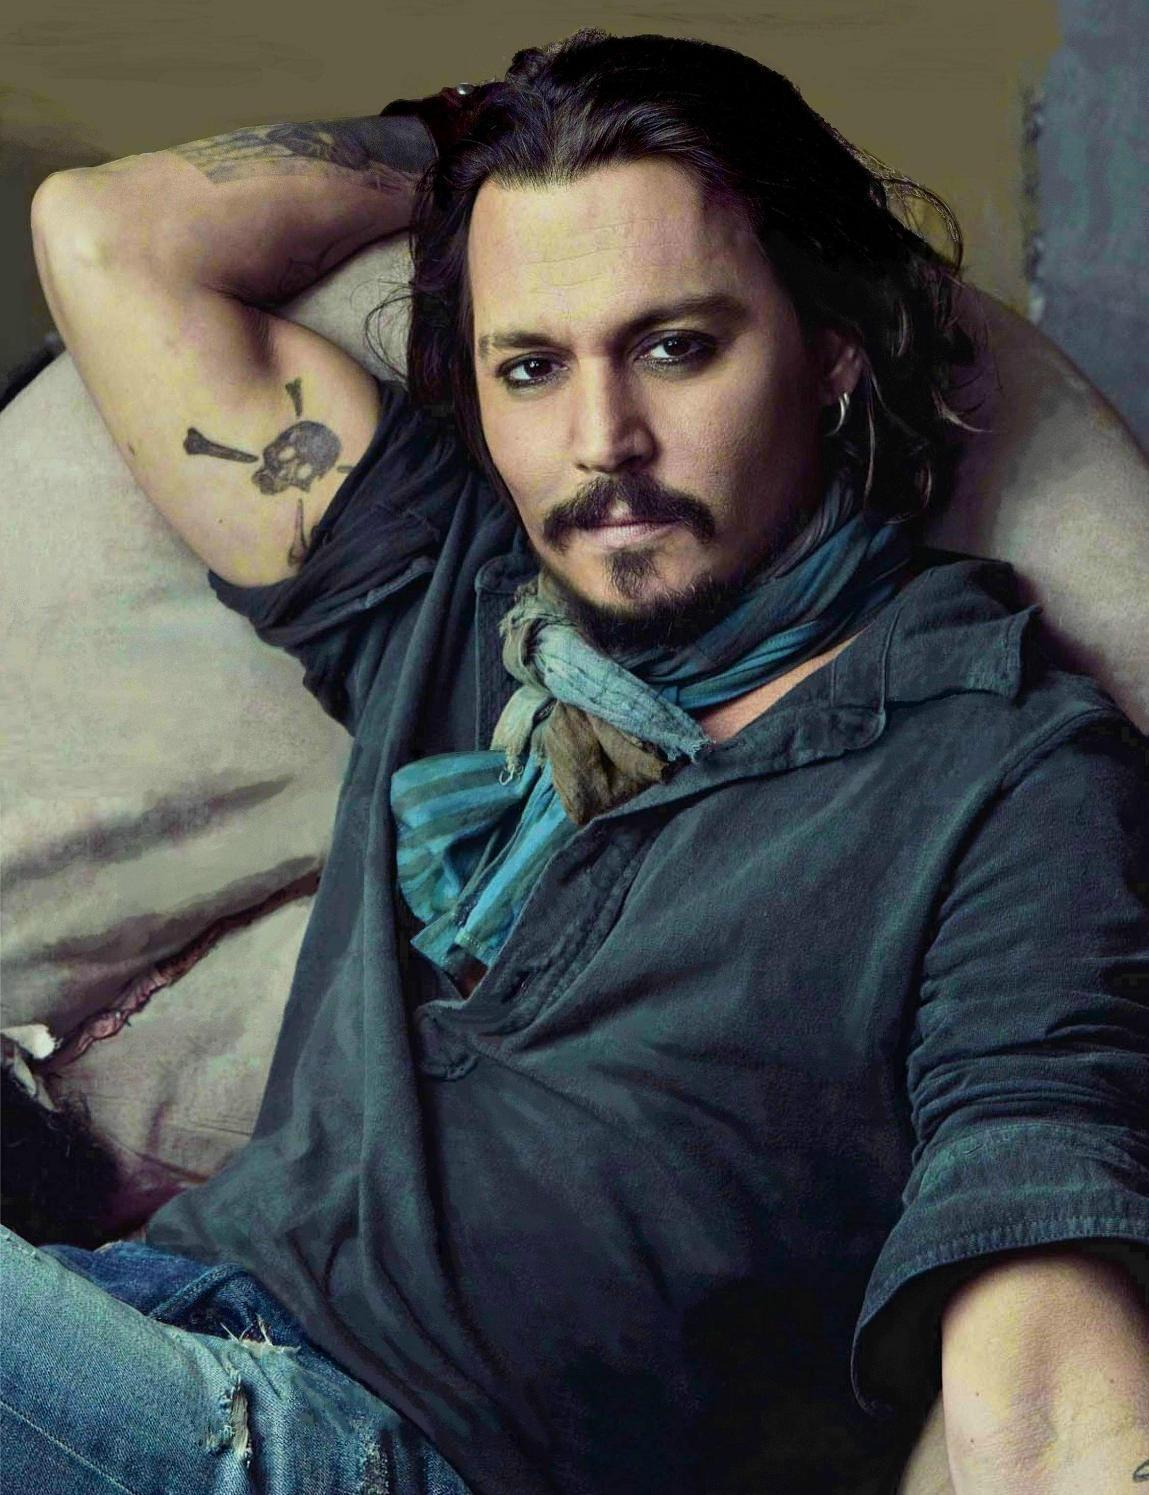 http://1.bp.blogspot.com/-rpBl5Z2gpt4/UBcHfxuj1fI/AAAAAAAAGBI/9dSFRHv9NGI/s1600/johnny-depp-UK-Vanity-Fair-2011-Jan-johnny-depp-18182808-1149-1495.jpg